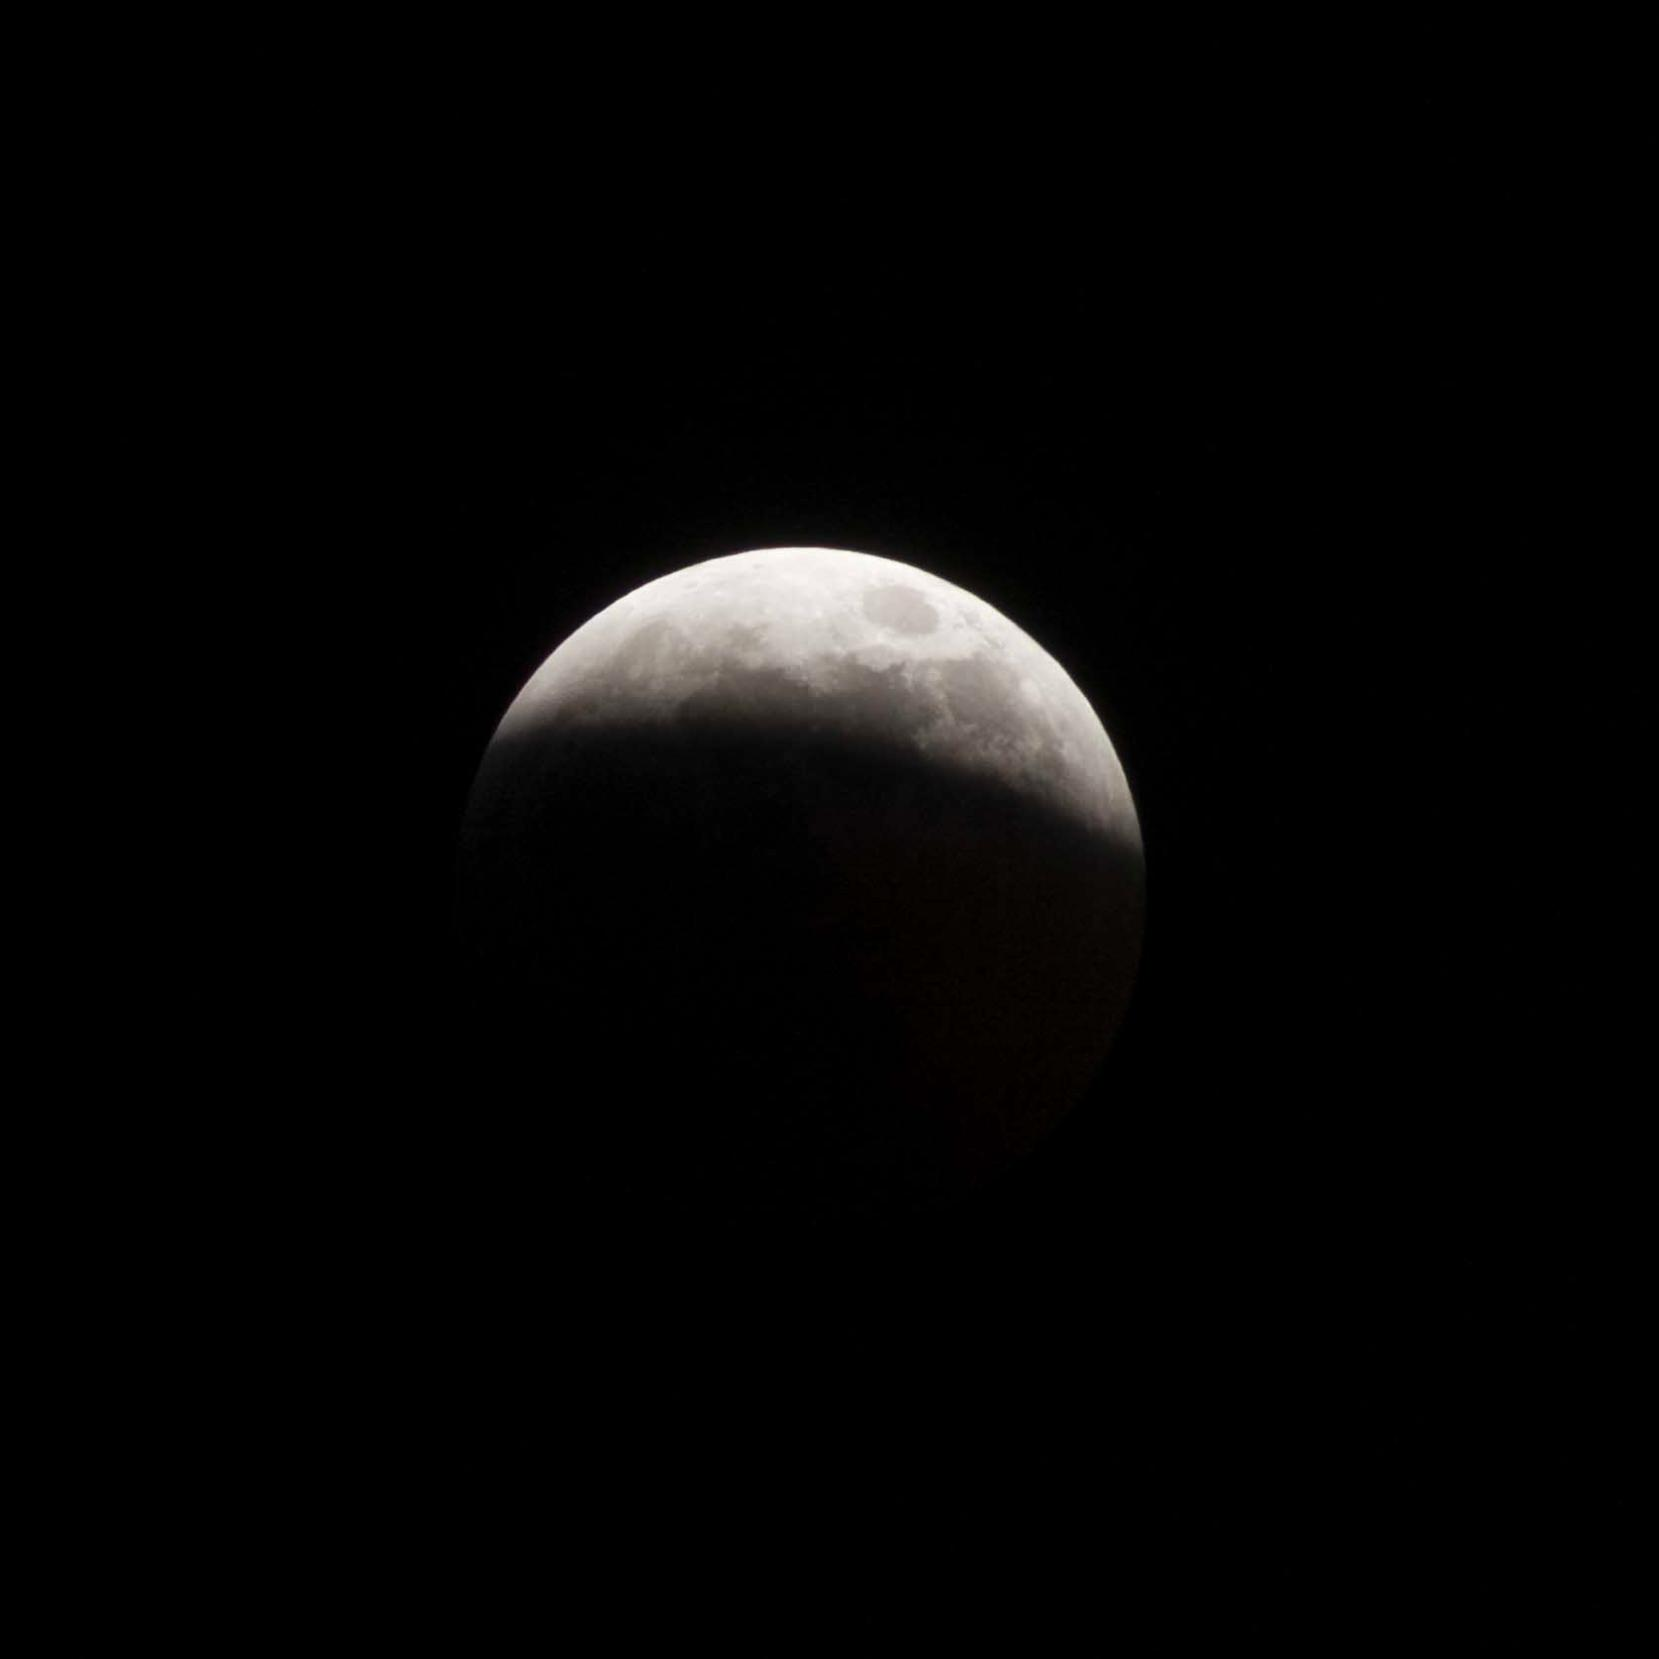 Lunar eclipse 20 Jan 2019 #1